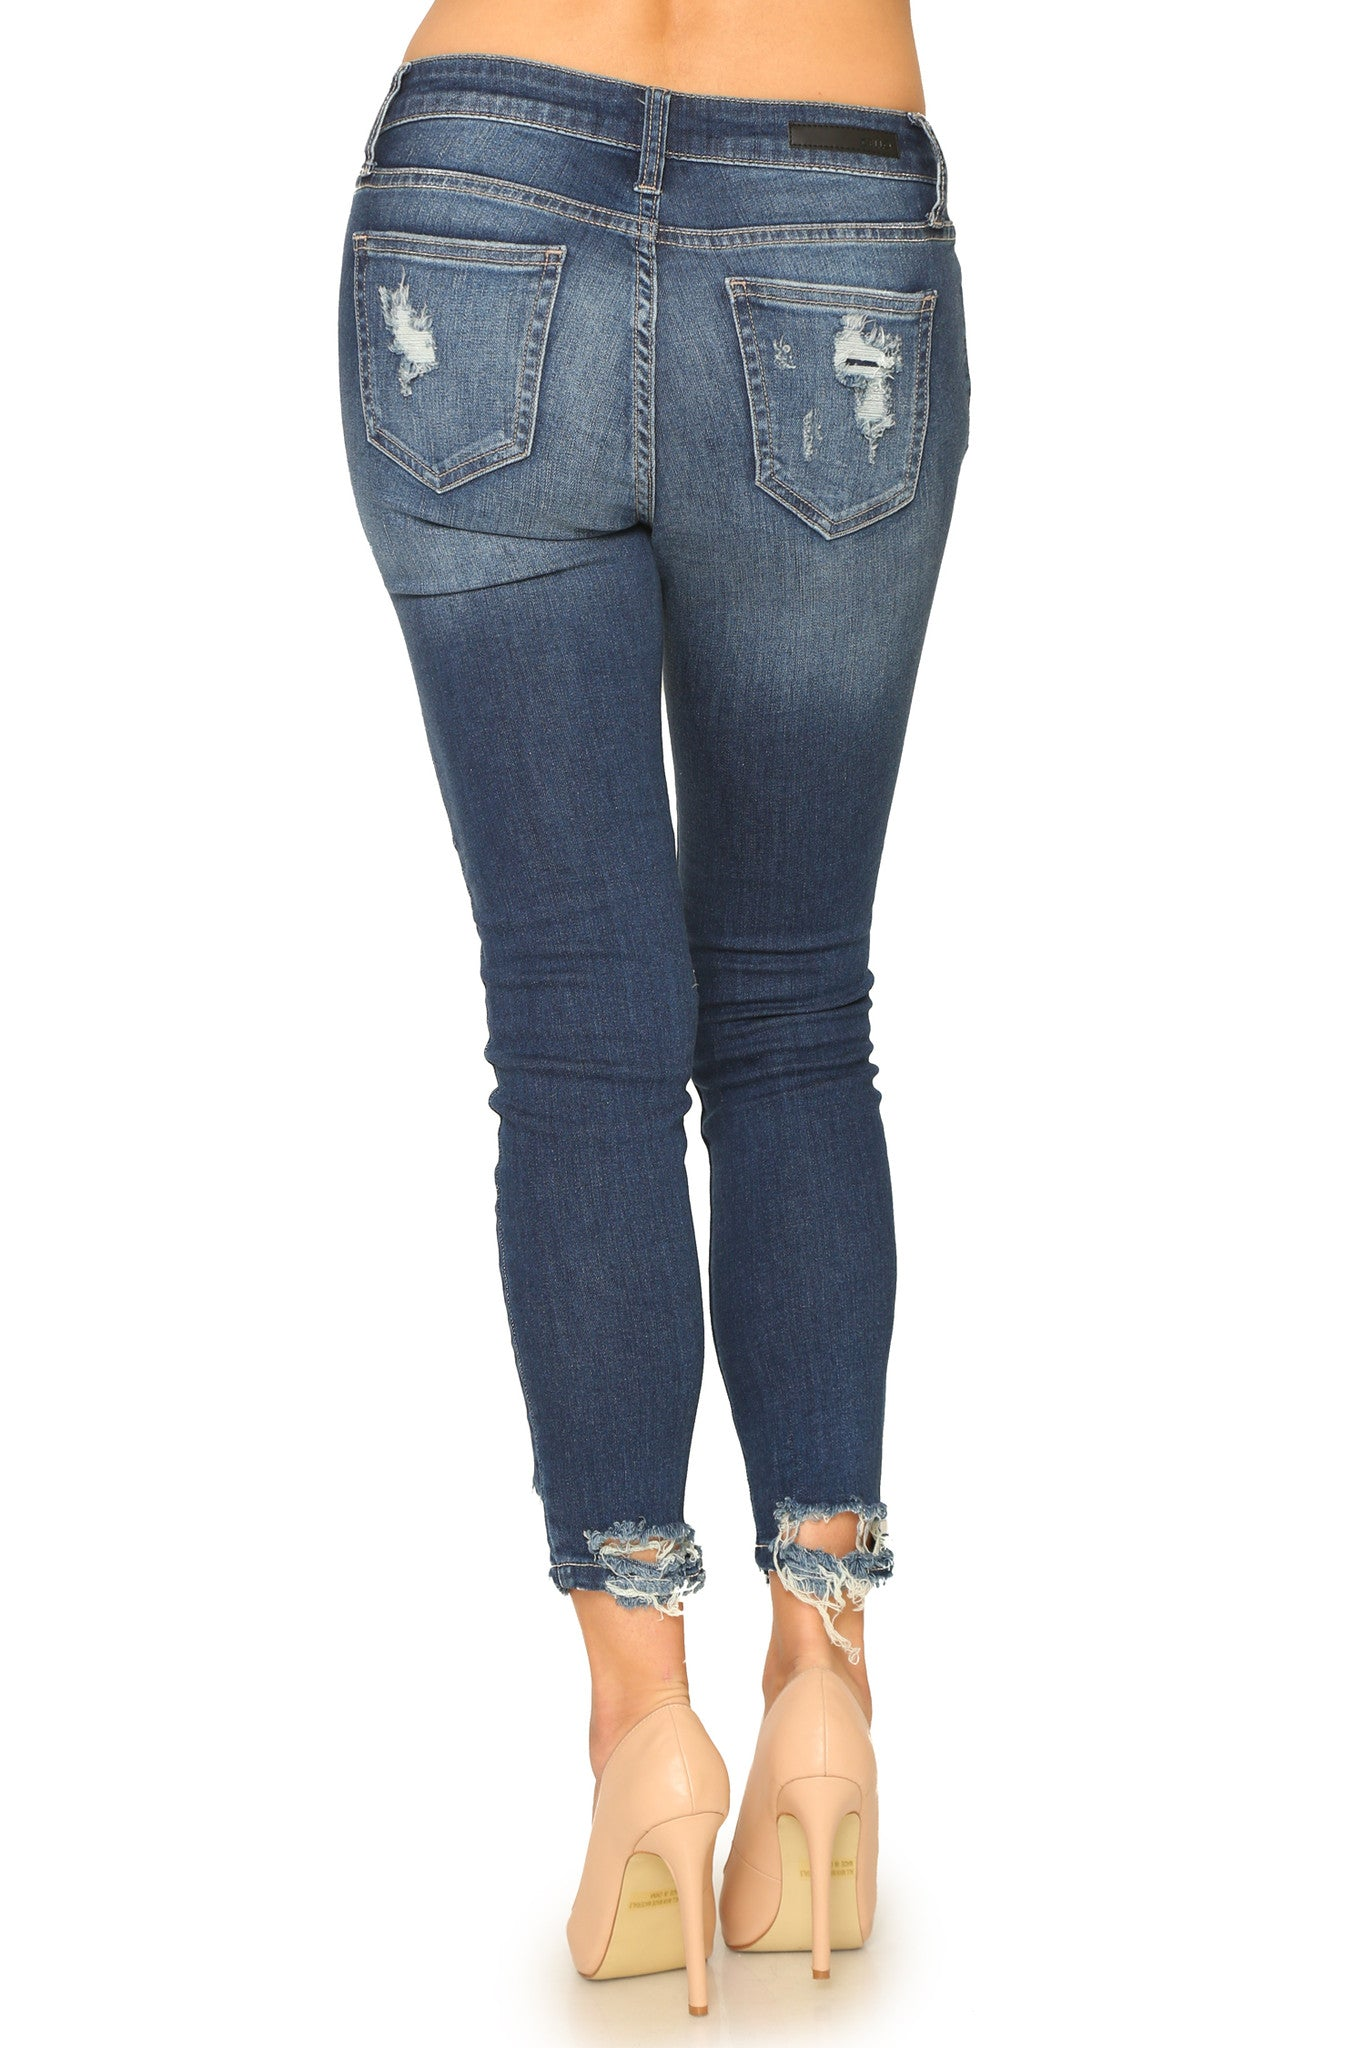 ADELE JEANS